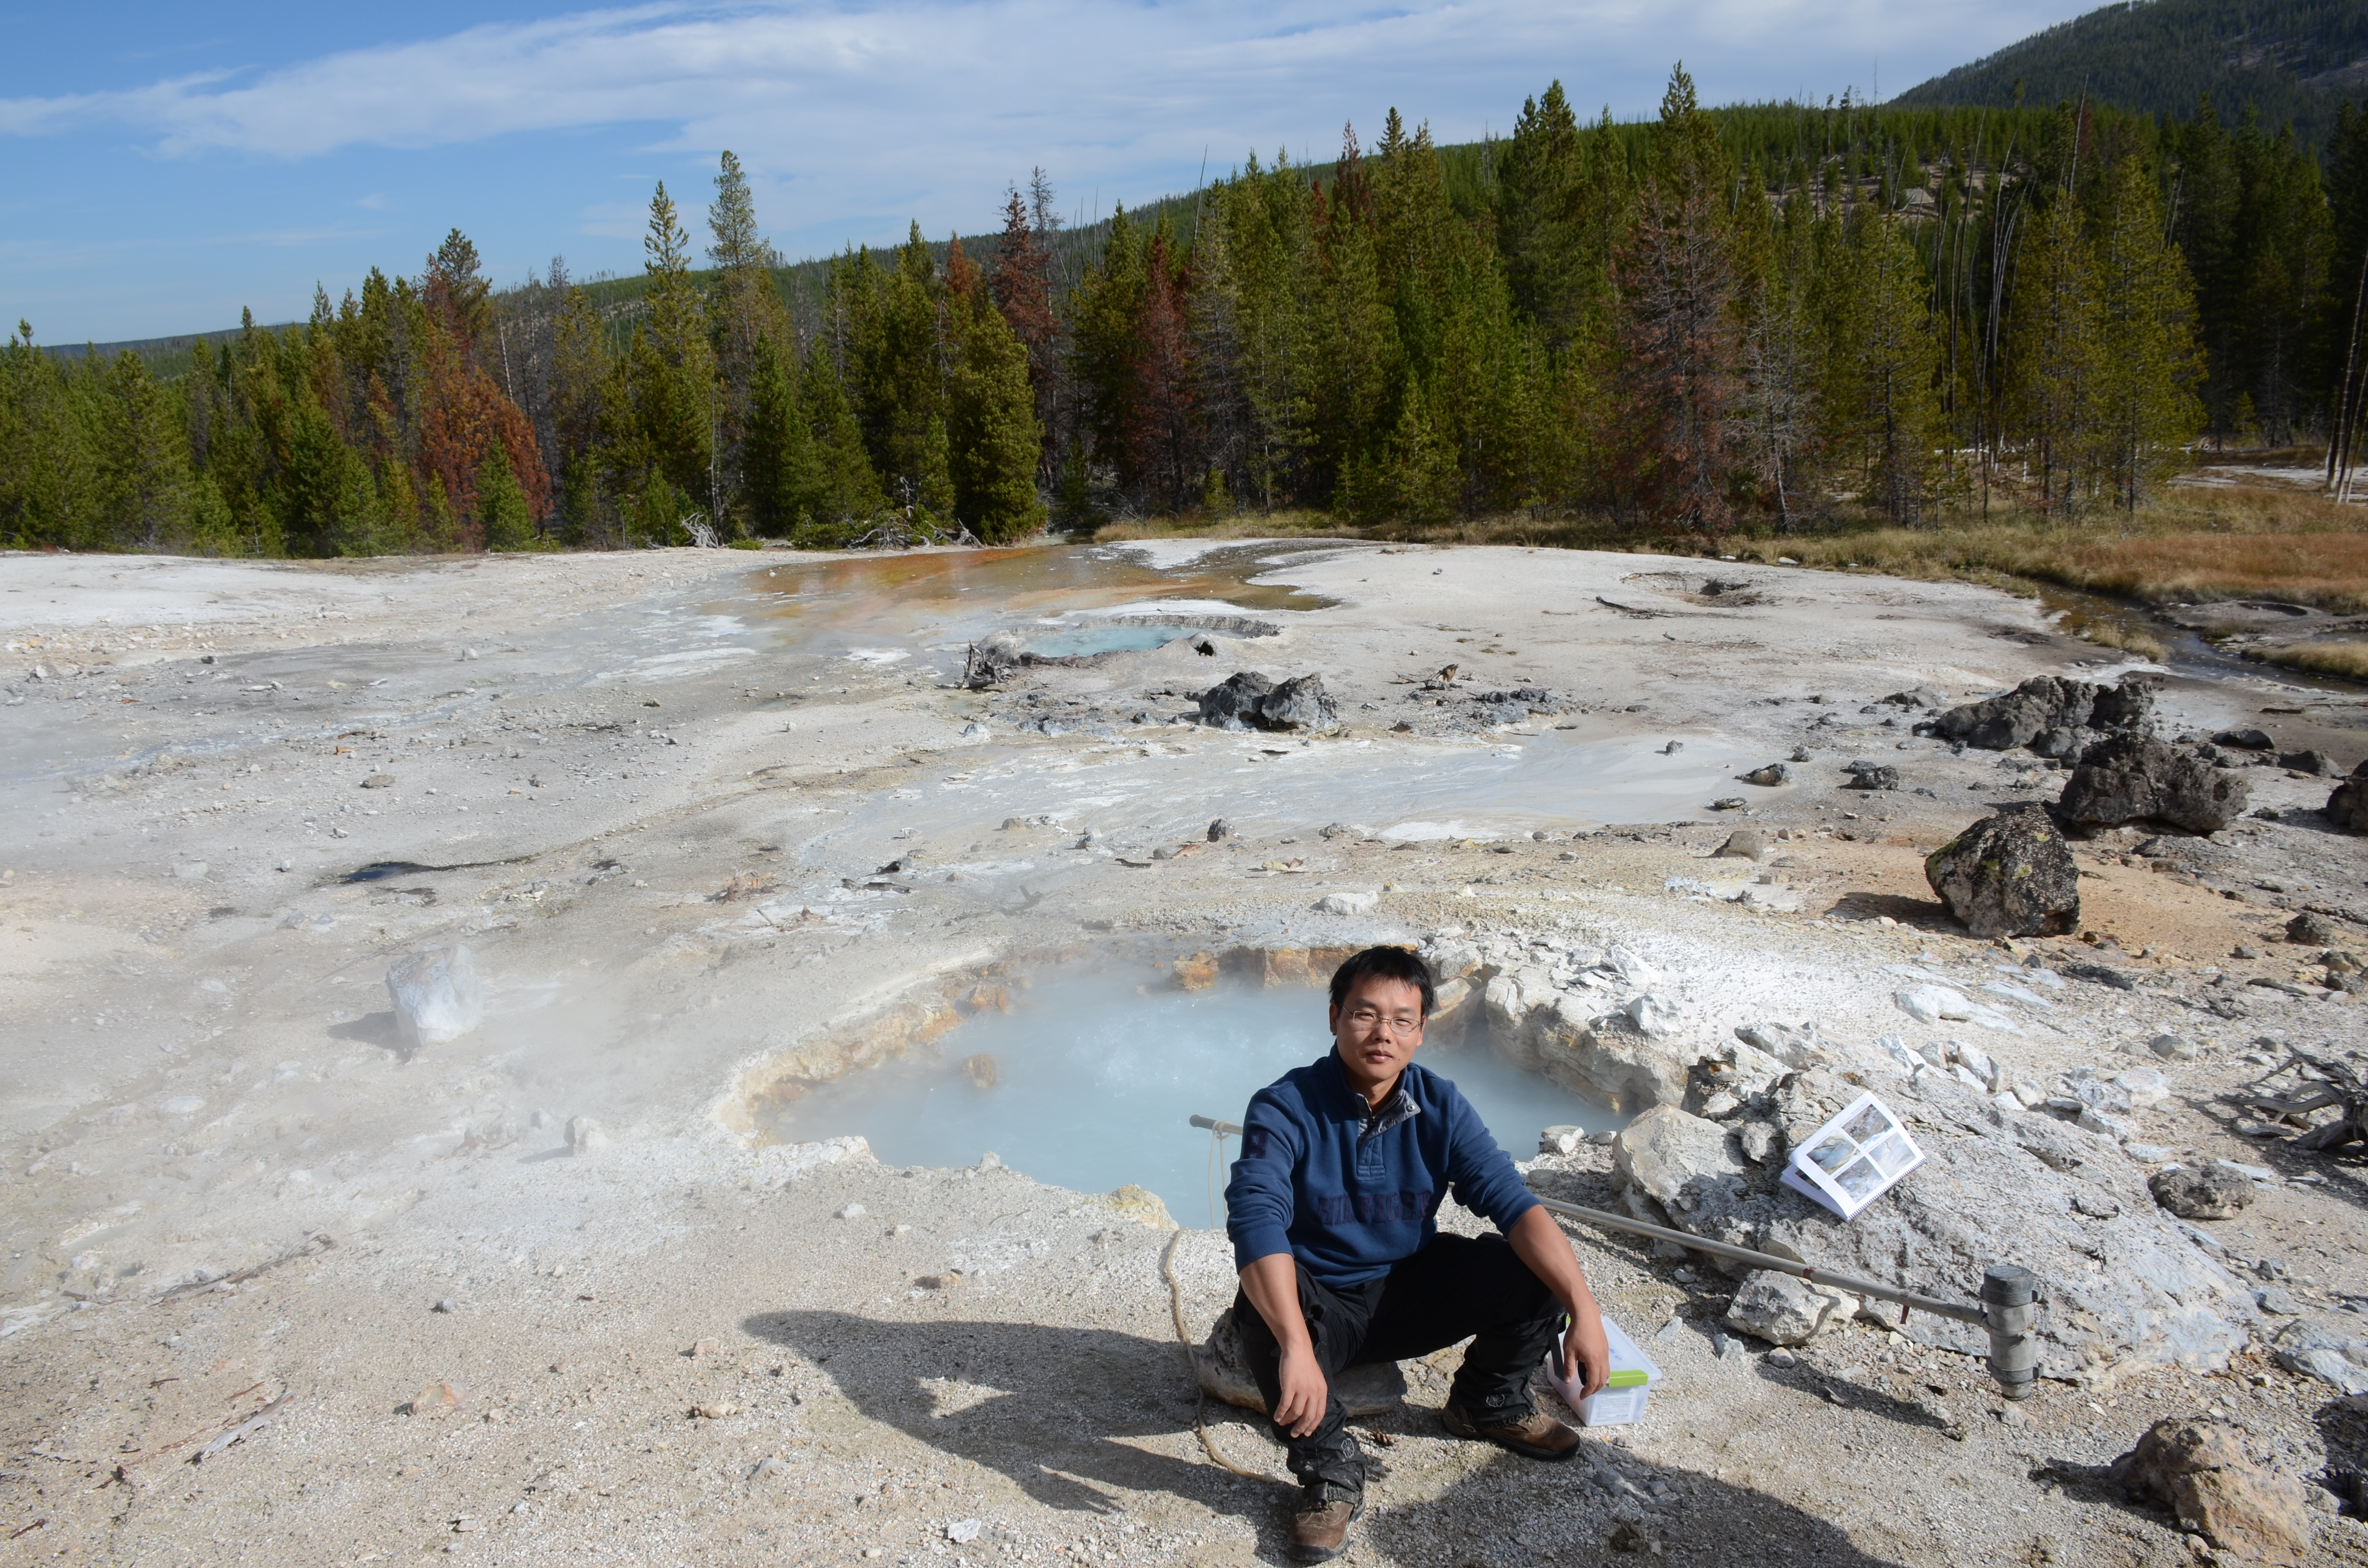 Lead author, Changyi Zhang, collecting samples in September 2014 at a hot spring in Yellowstone National Park. Image credit: Zhang et a. (2016)/University of Illinois at Urbana-Champaign